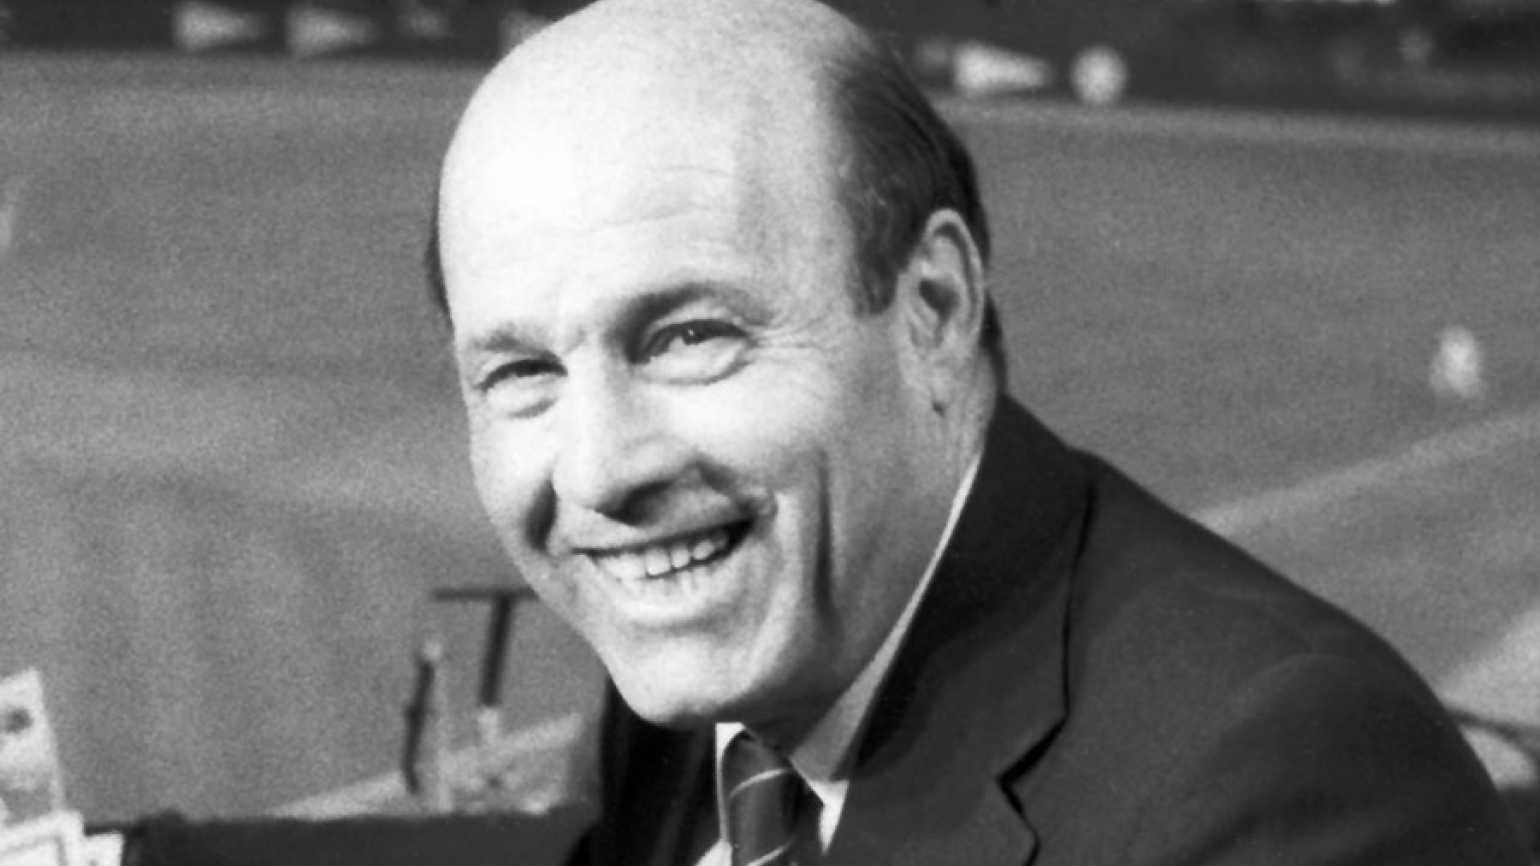 Guideposts: Former major leaguer and broadcaster Joe Garagiola